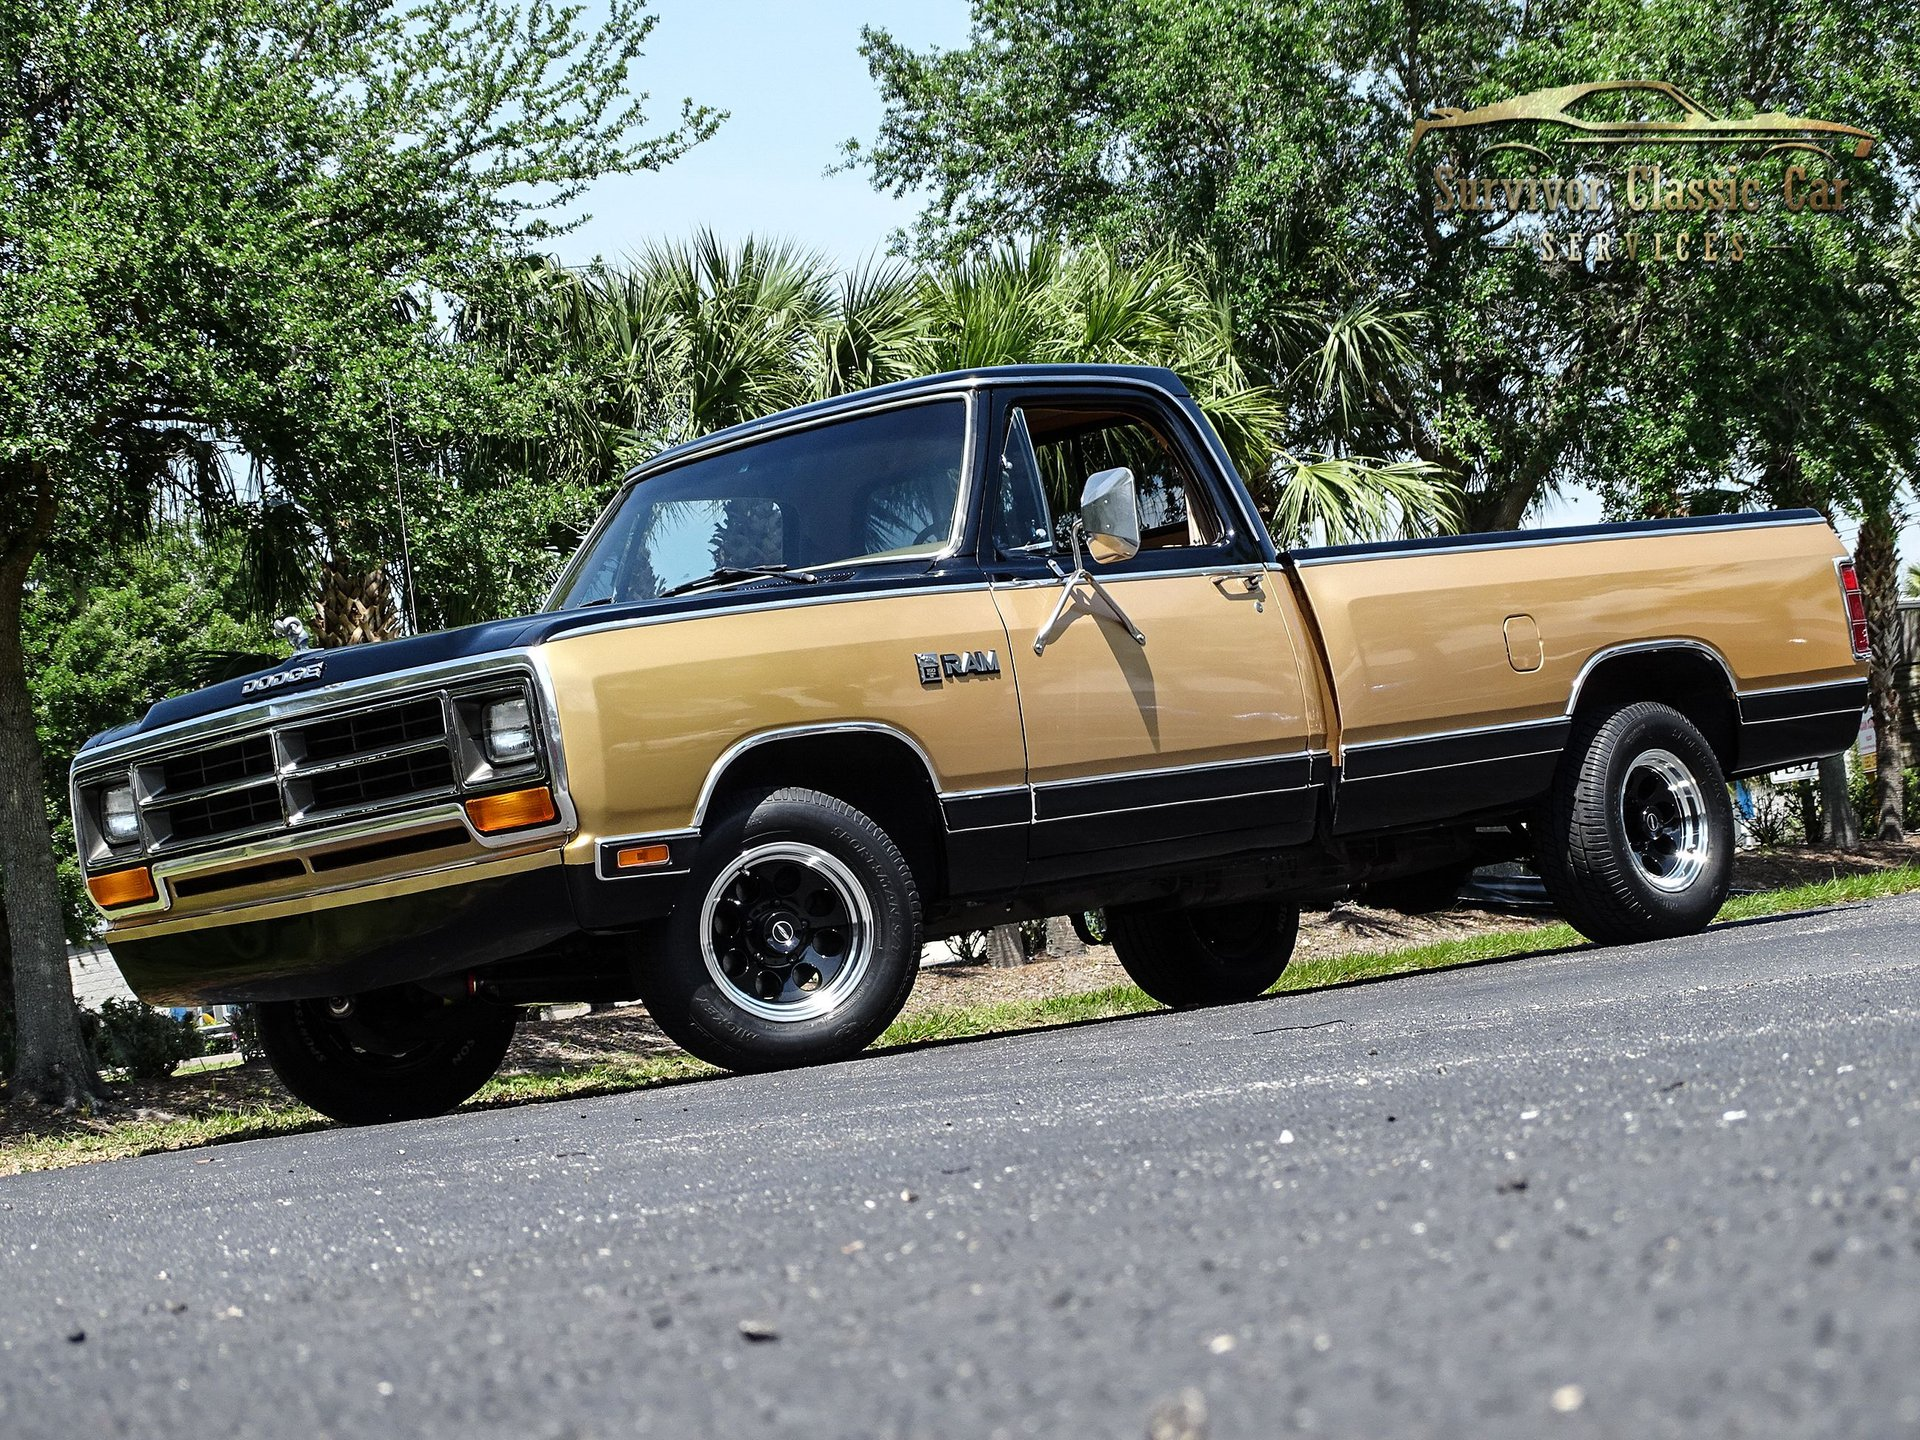 1986 dodge d100 series royal se